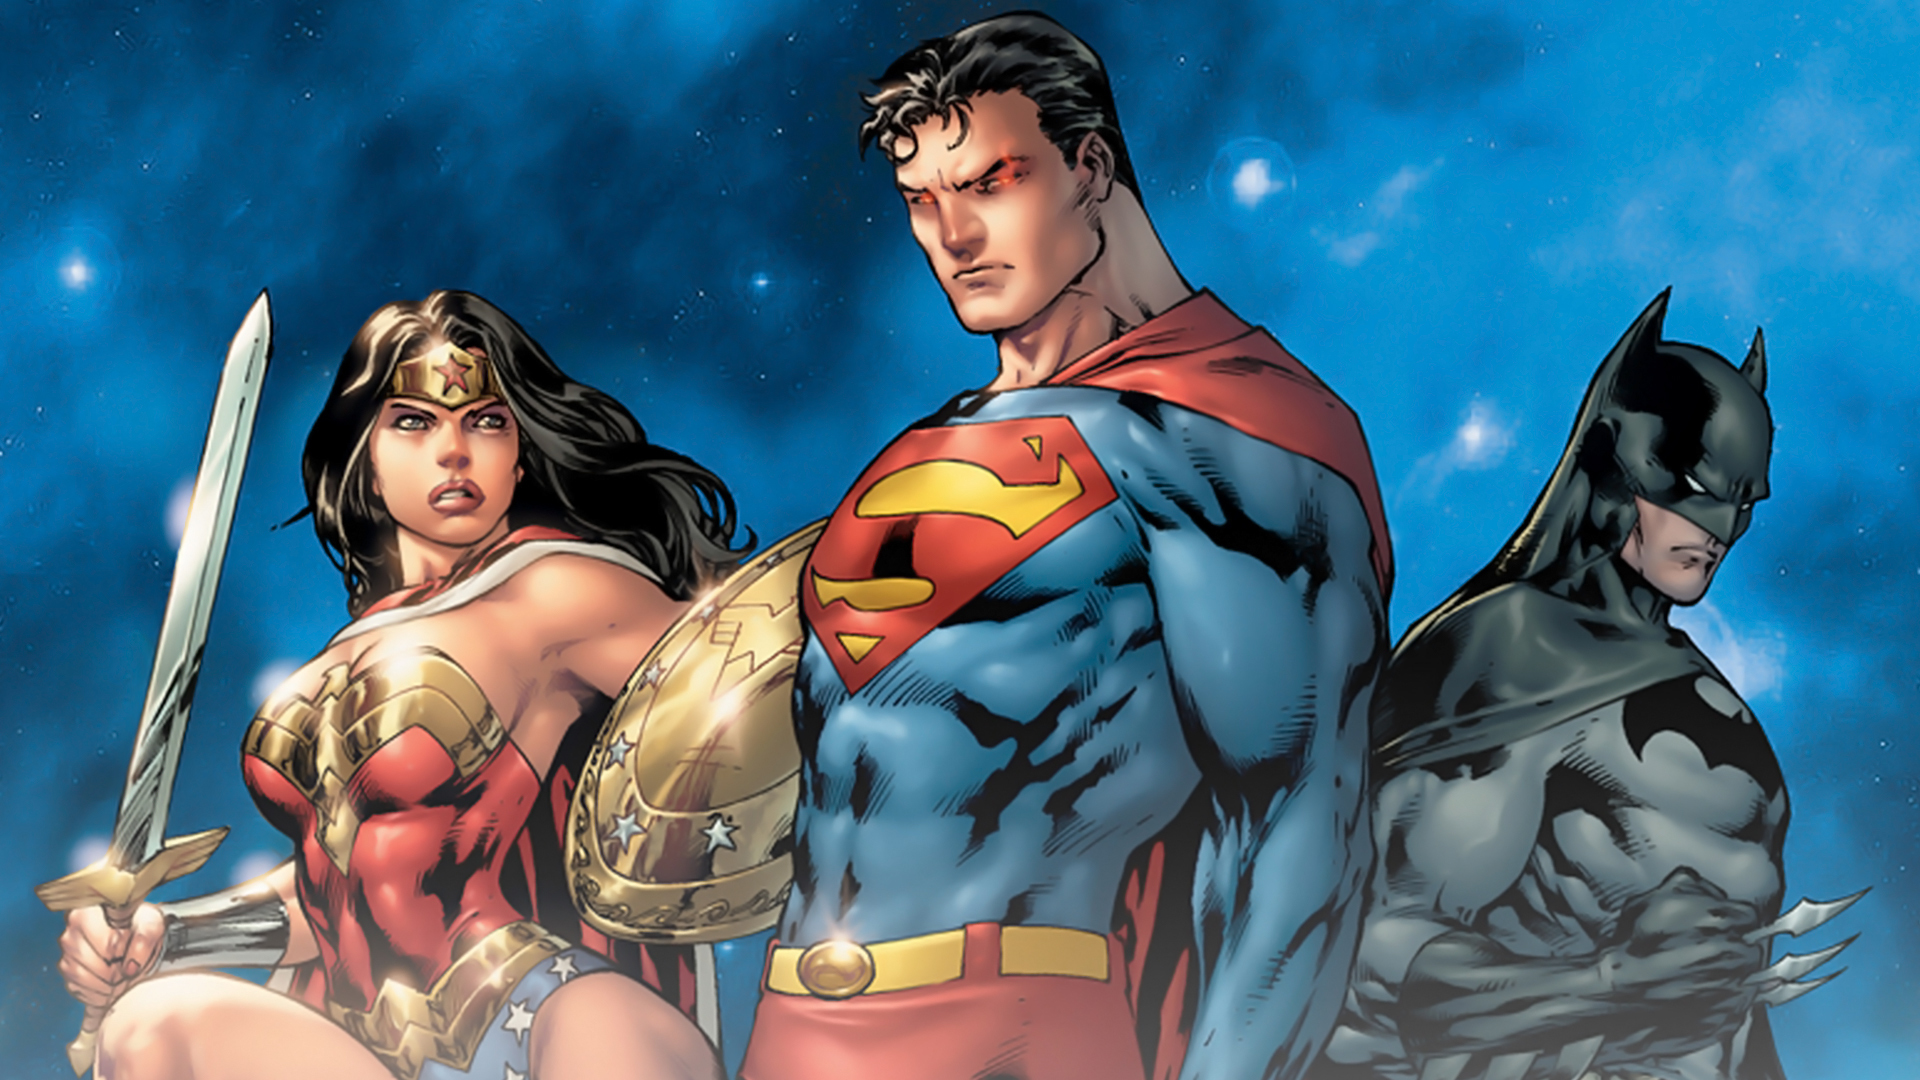 La Justice League sta arrivando: 15 curiosità su Batman, Superman e Wonder Woman!